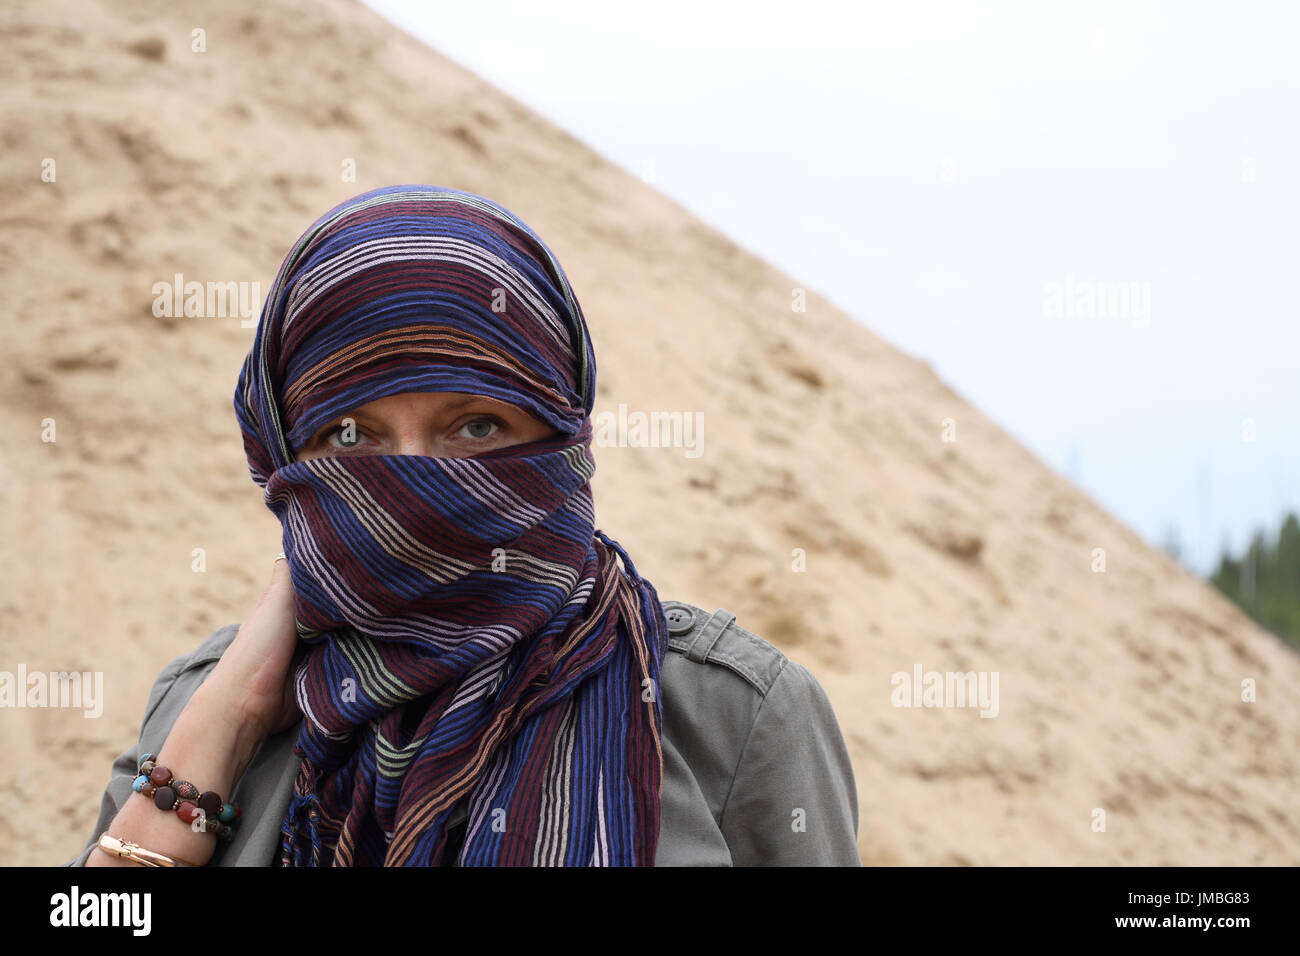 Eastern woman in yashmak over the background with sand and sky - Stock Image